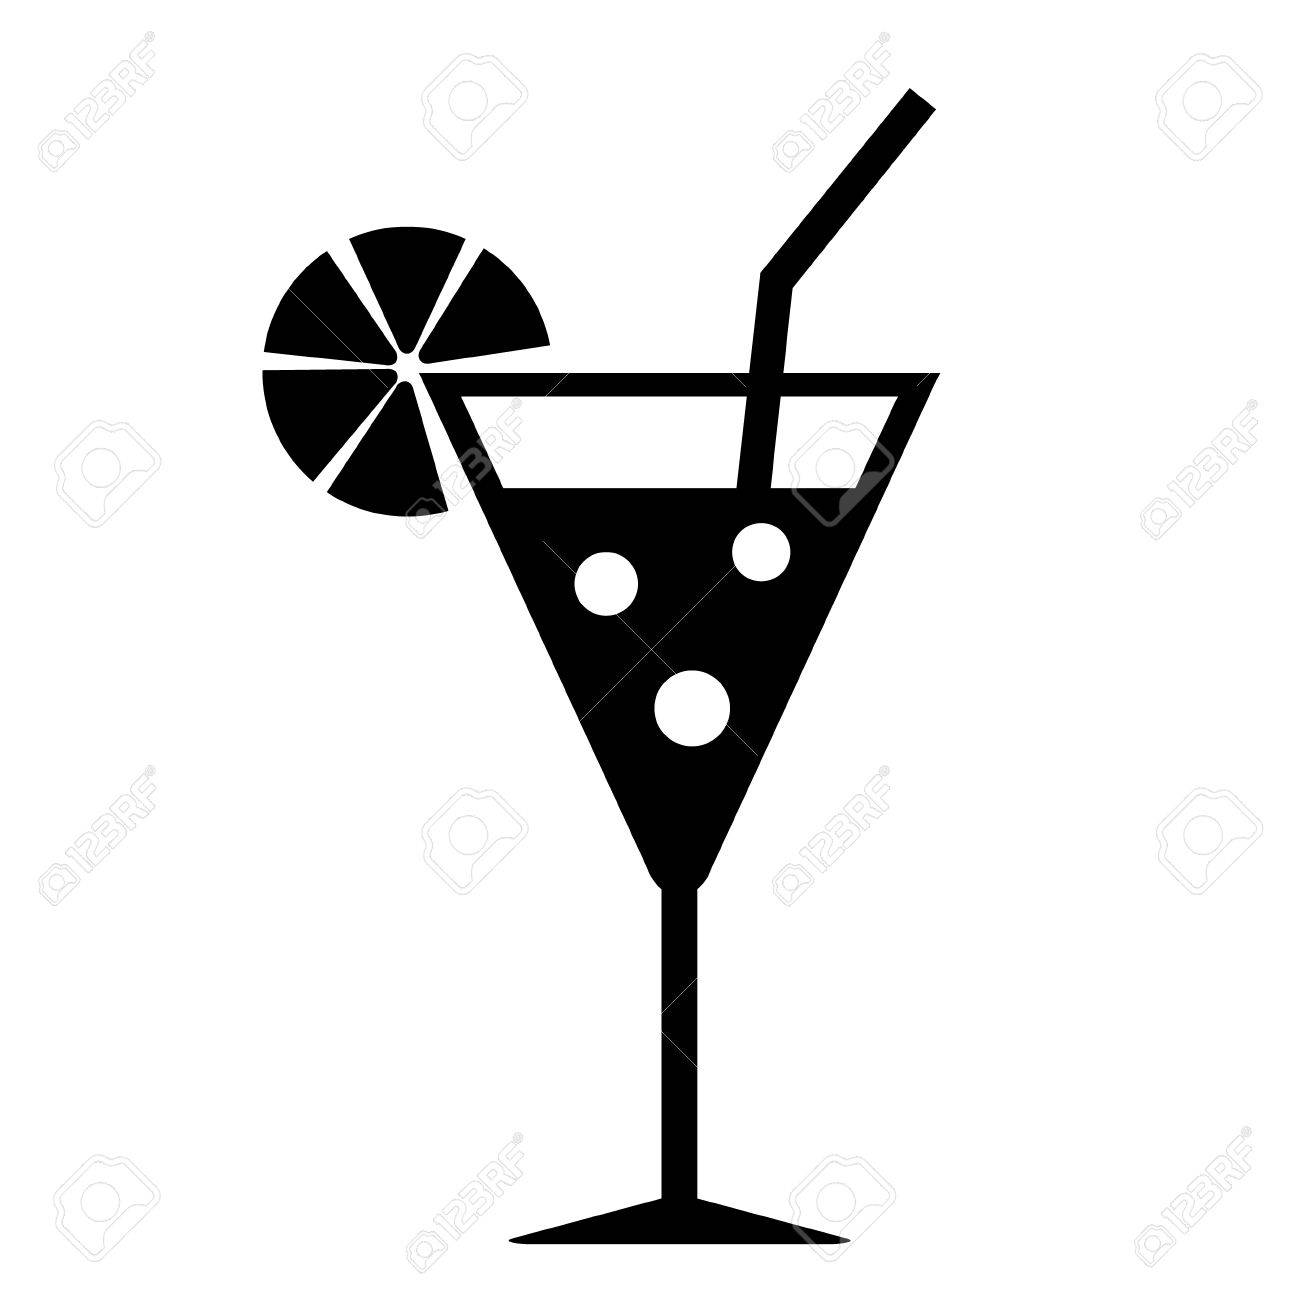 Cocktail glass icon on white background.